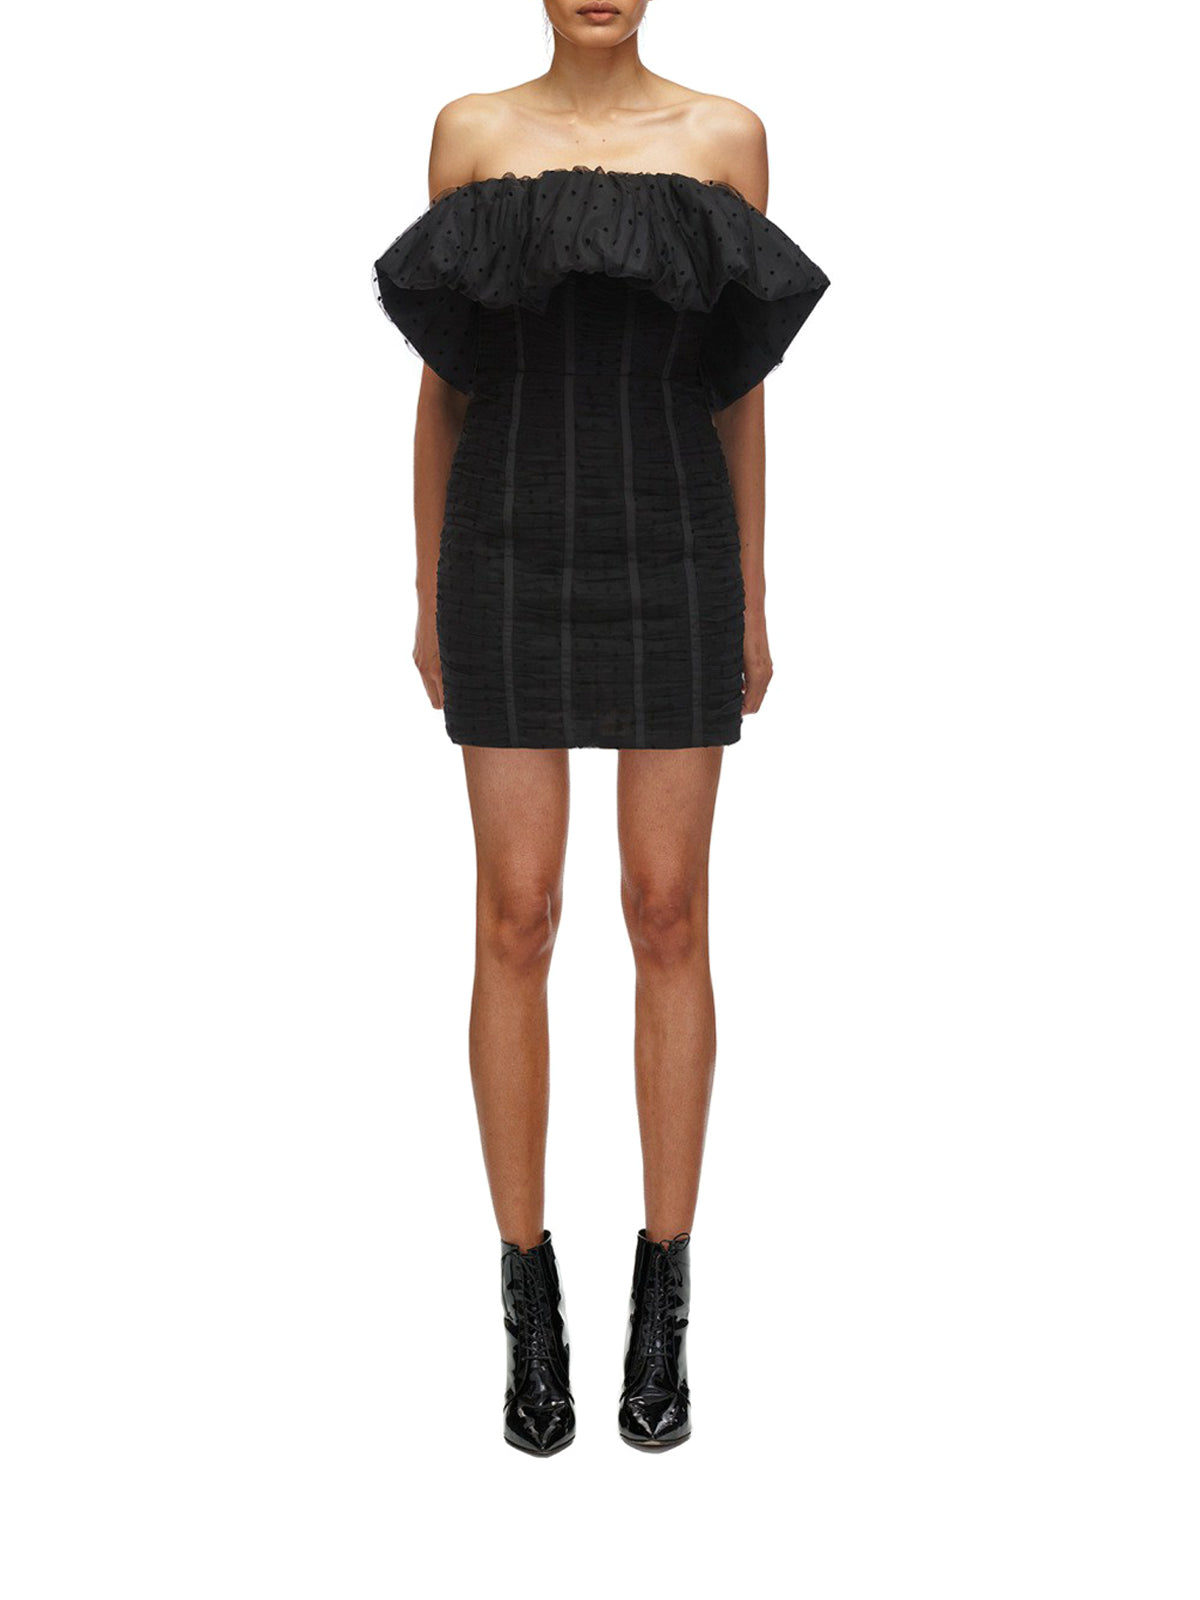 Black Dot Mesh Frill Mini Dress